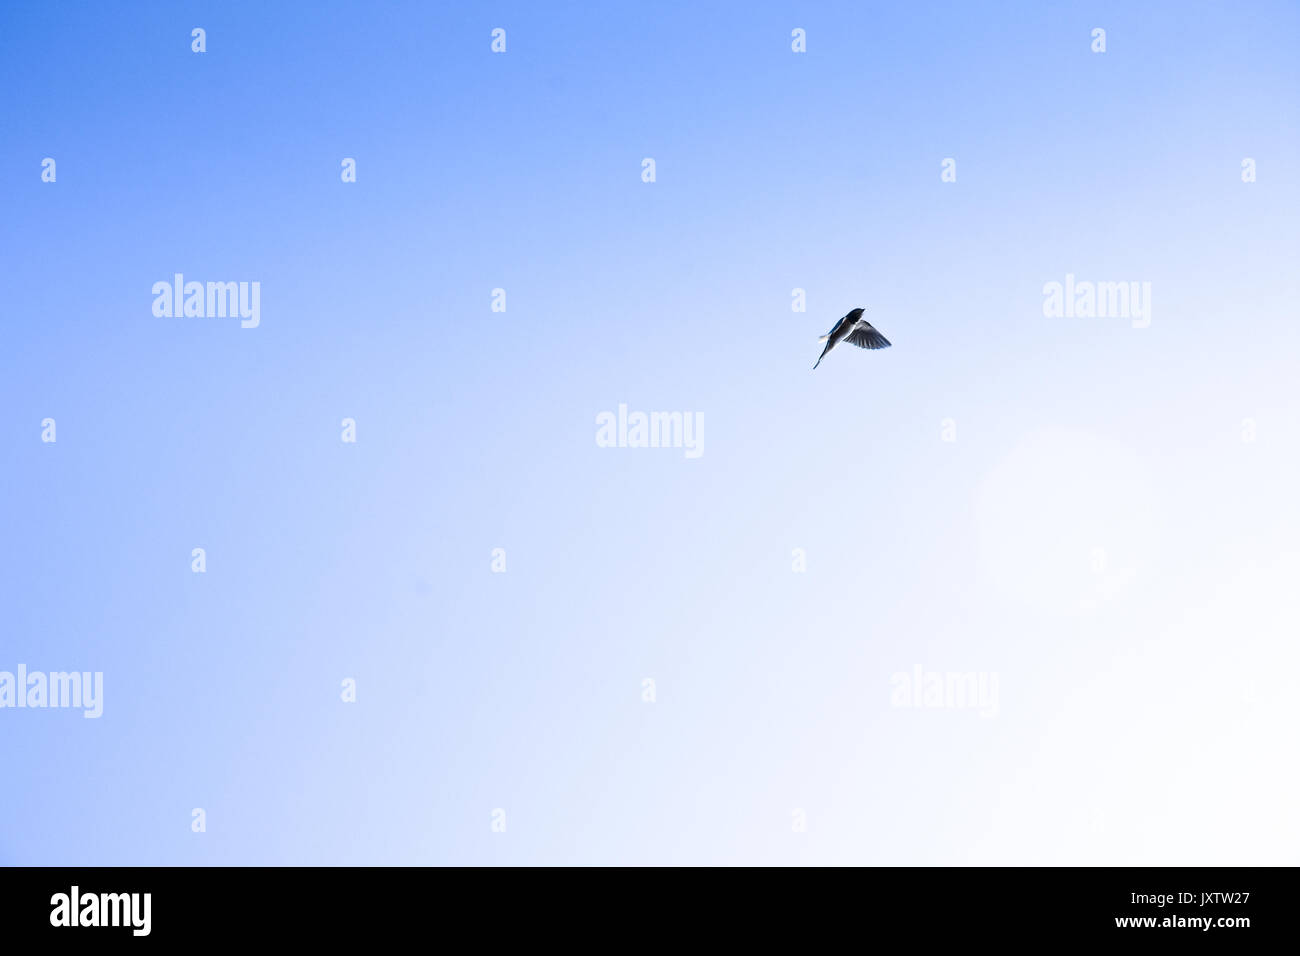 A swallow bird in flight against a clear bright blue sky at Cannock Chase, Staffordshire, UK - Stock Image